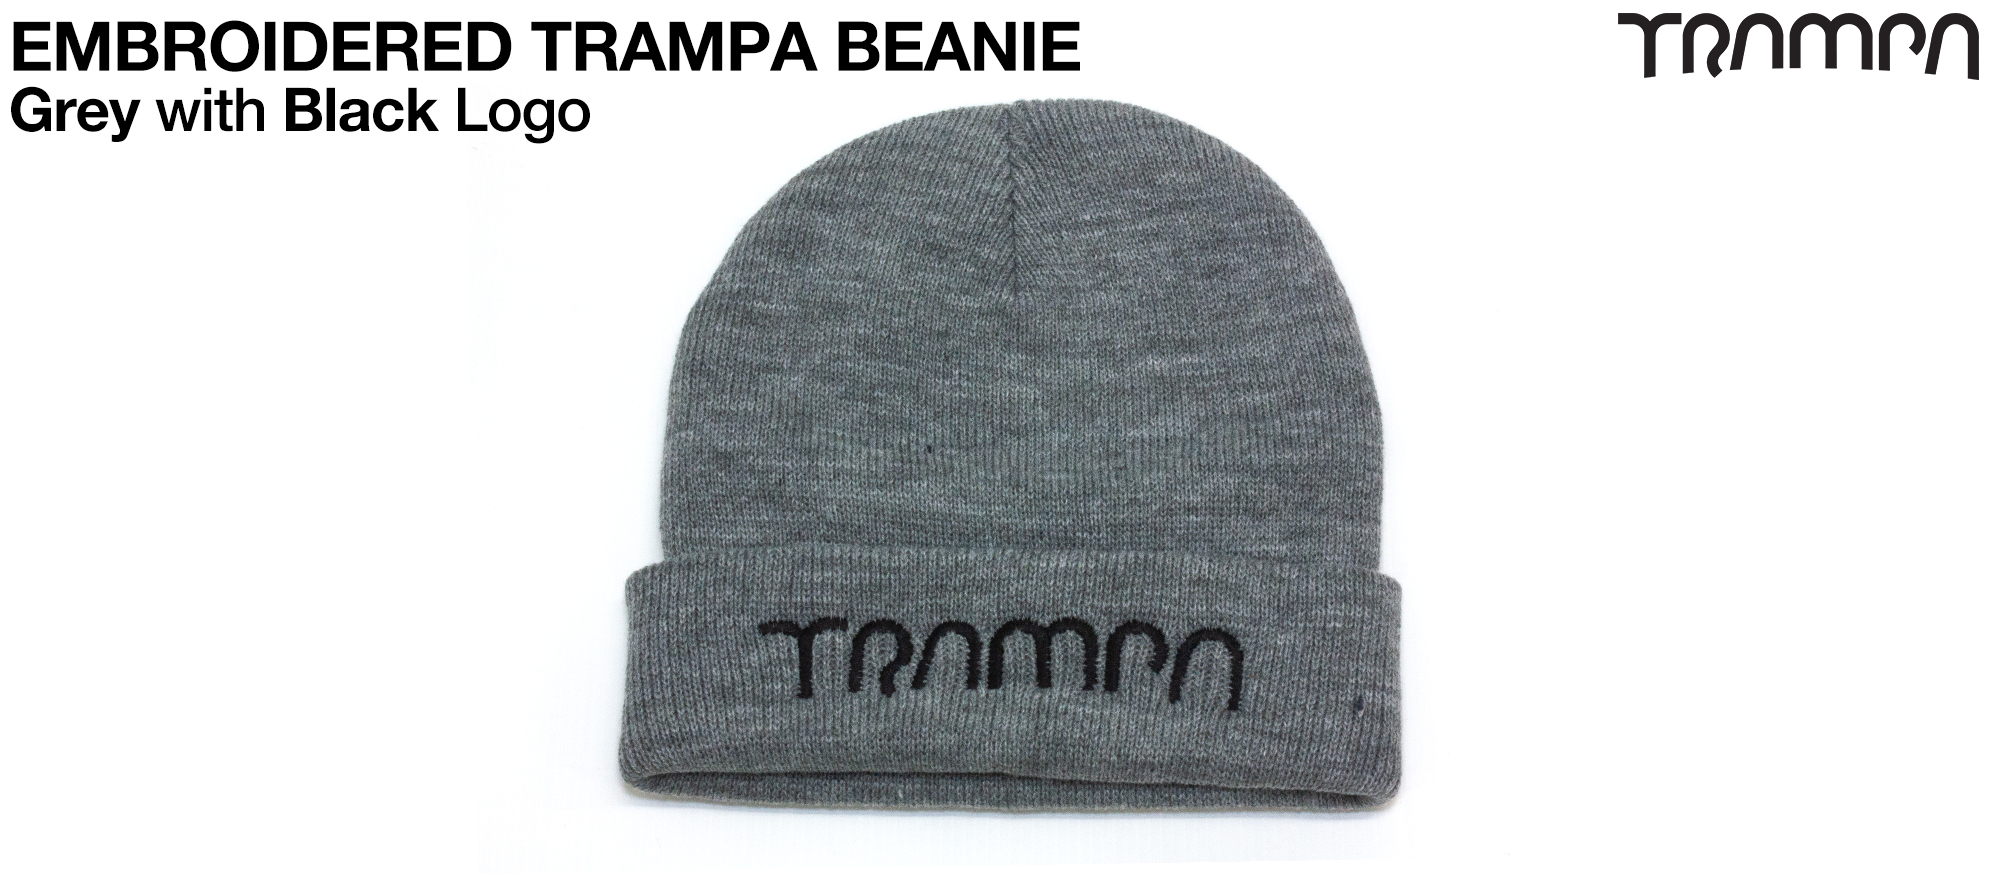 Grey Woolie hat with Black TRAMPA logo